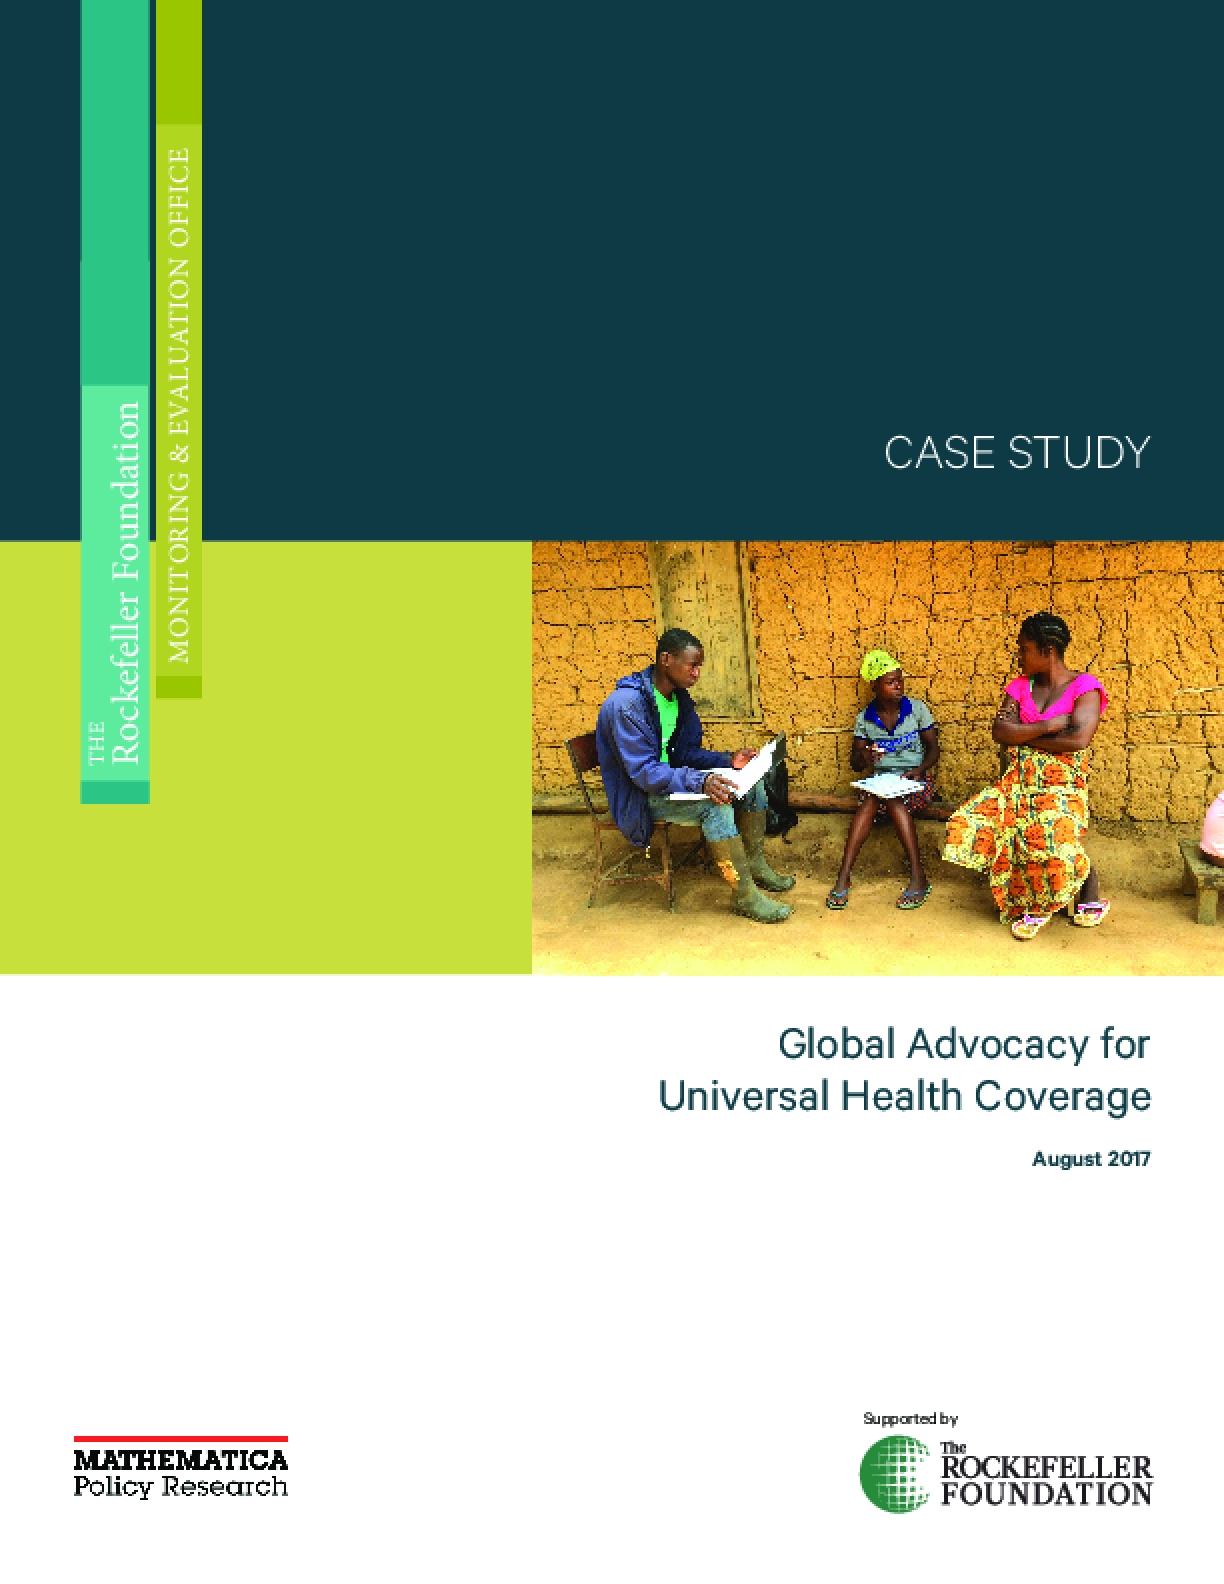 Global Advocacy for Universal Health Coverage